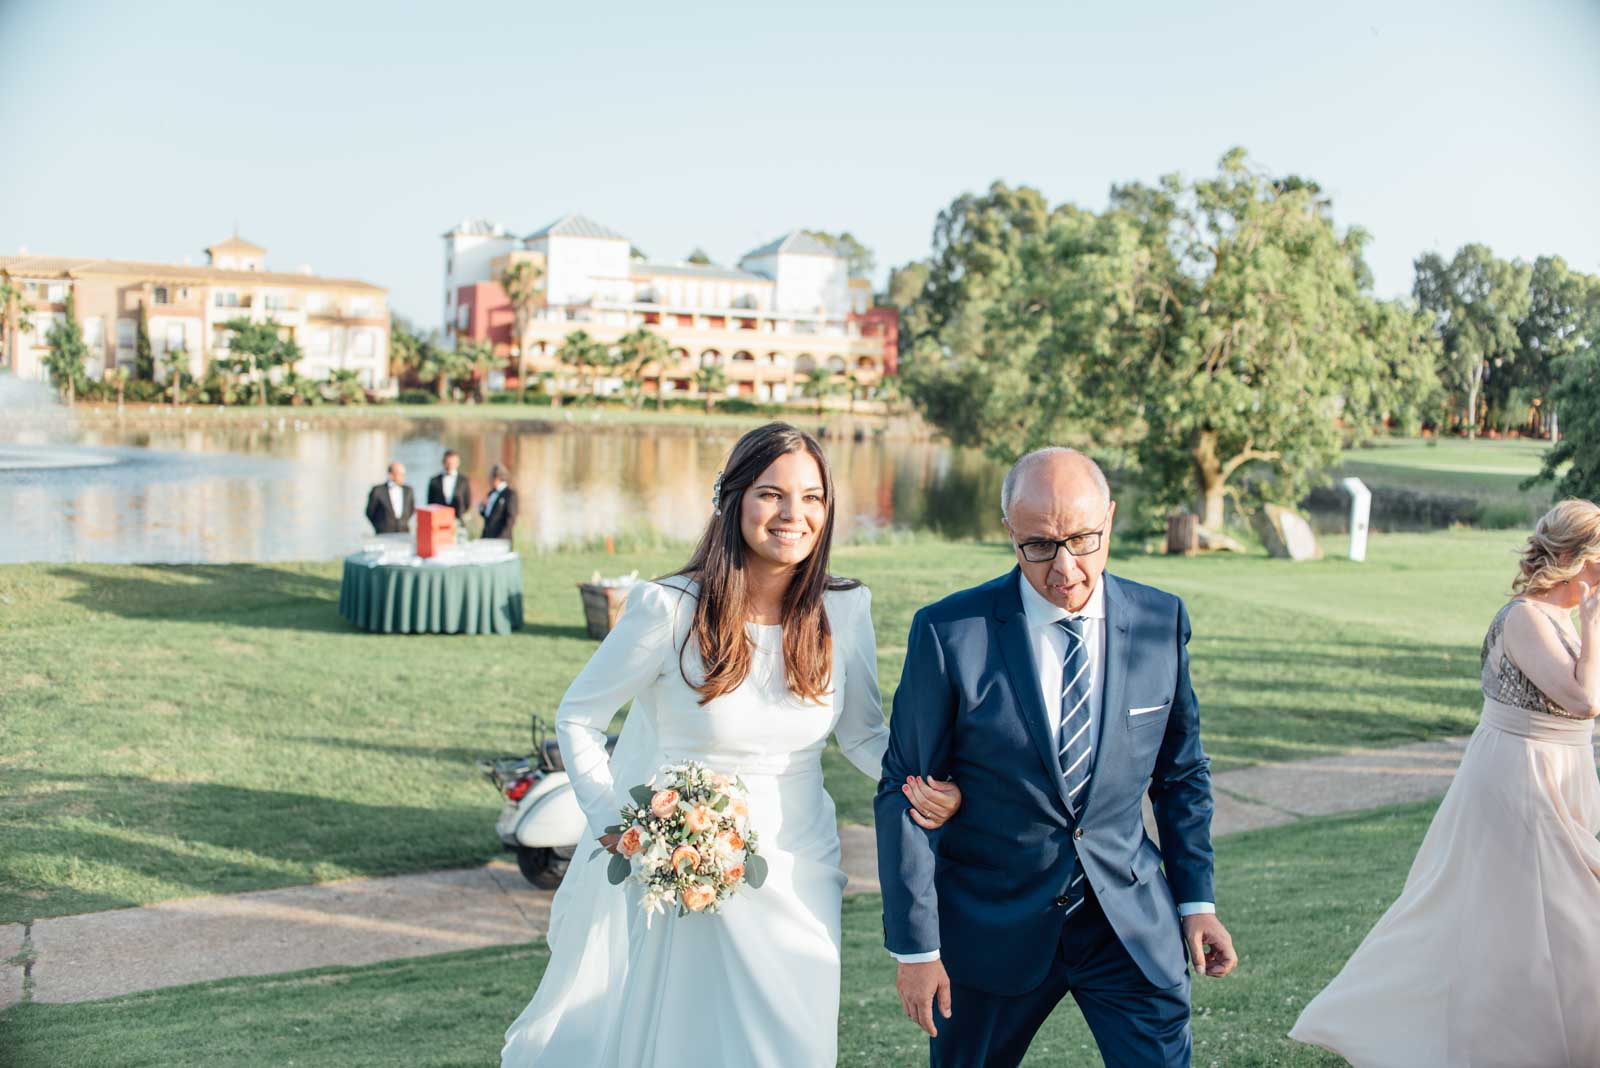 boda civil en isla canela golf huelva 100